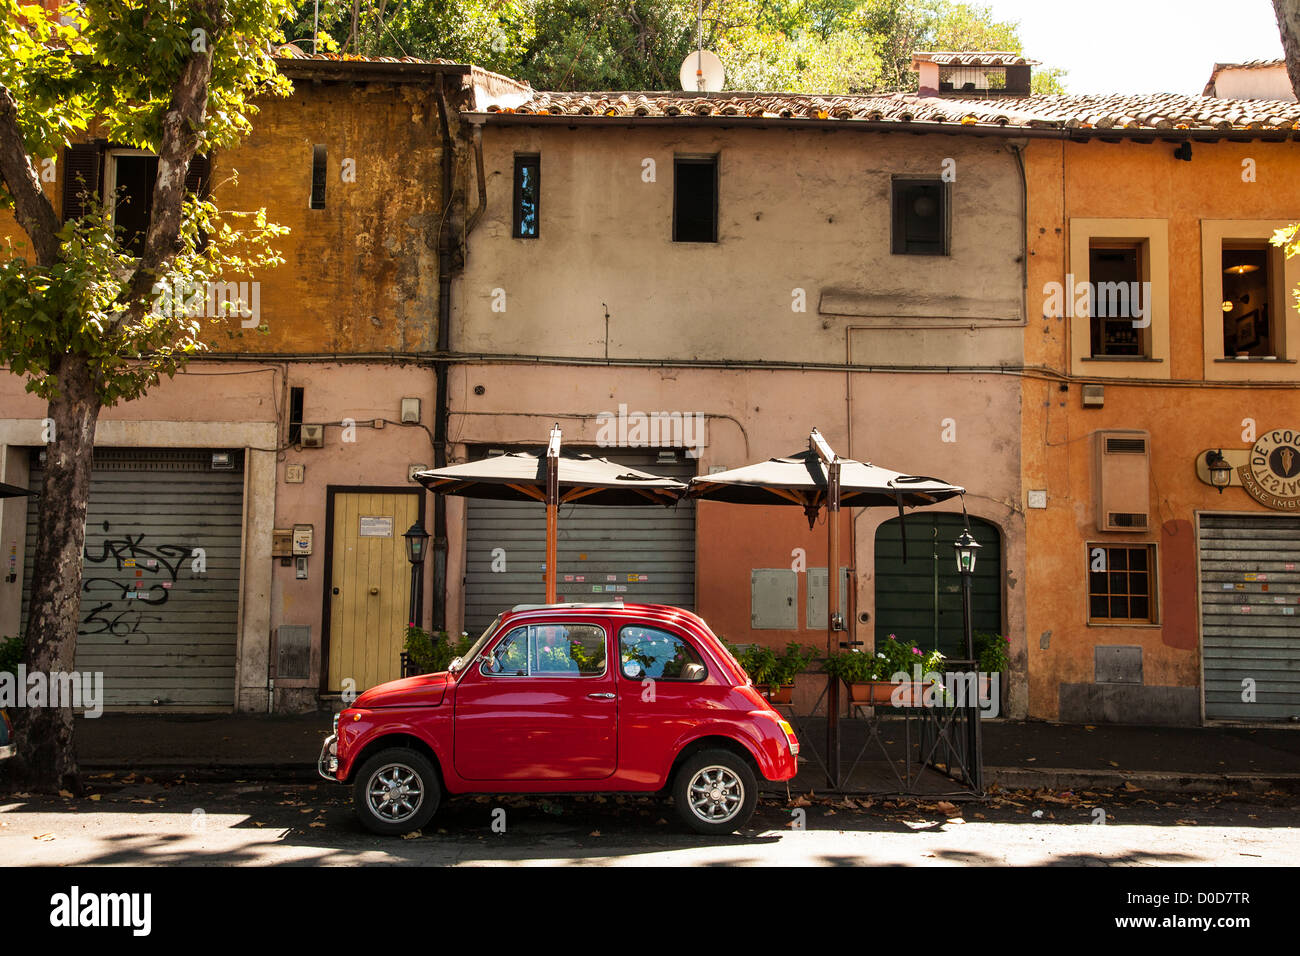 fiat 500 rouge rome italie banque d 39 images photo stock 51922663 alamy. Black Bedroom Furniture Sets. Home Design Ideas